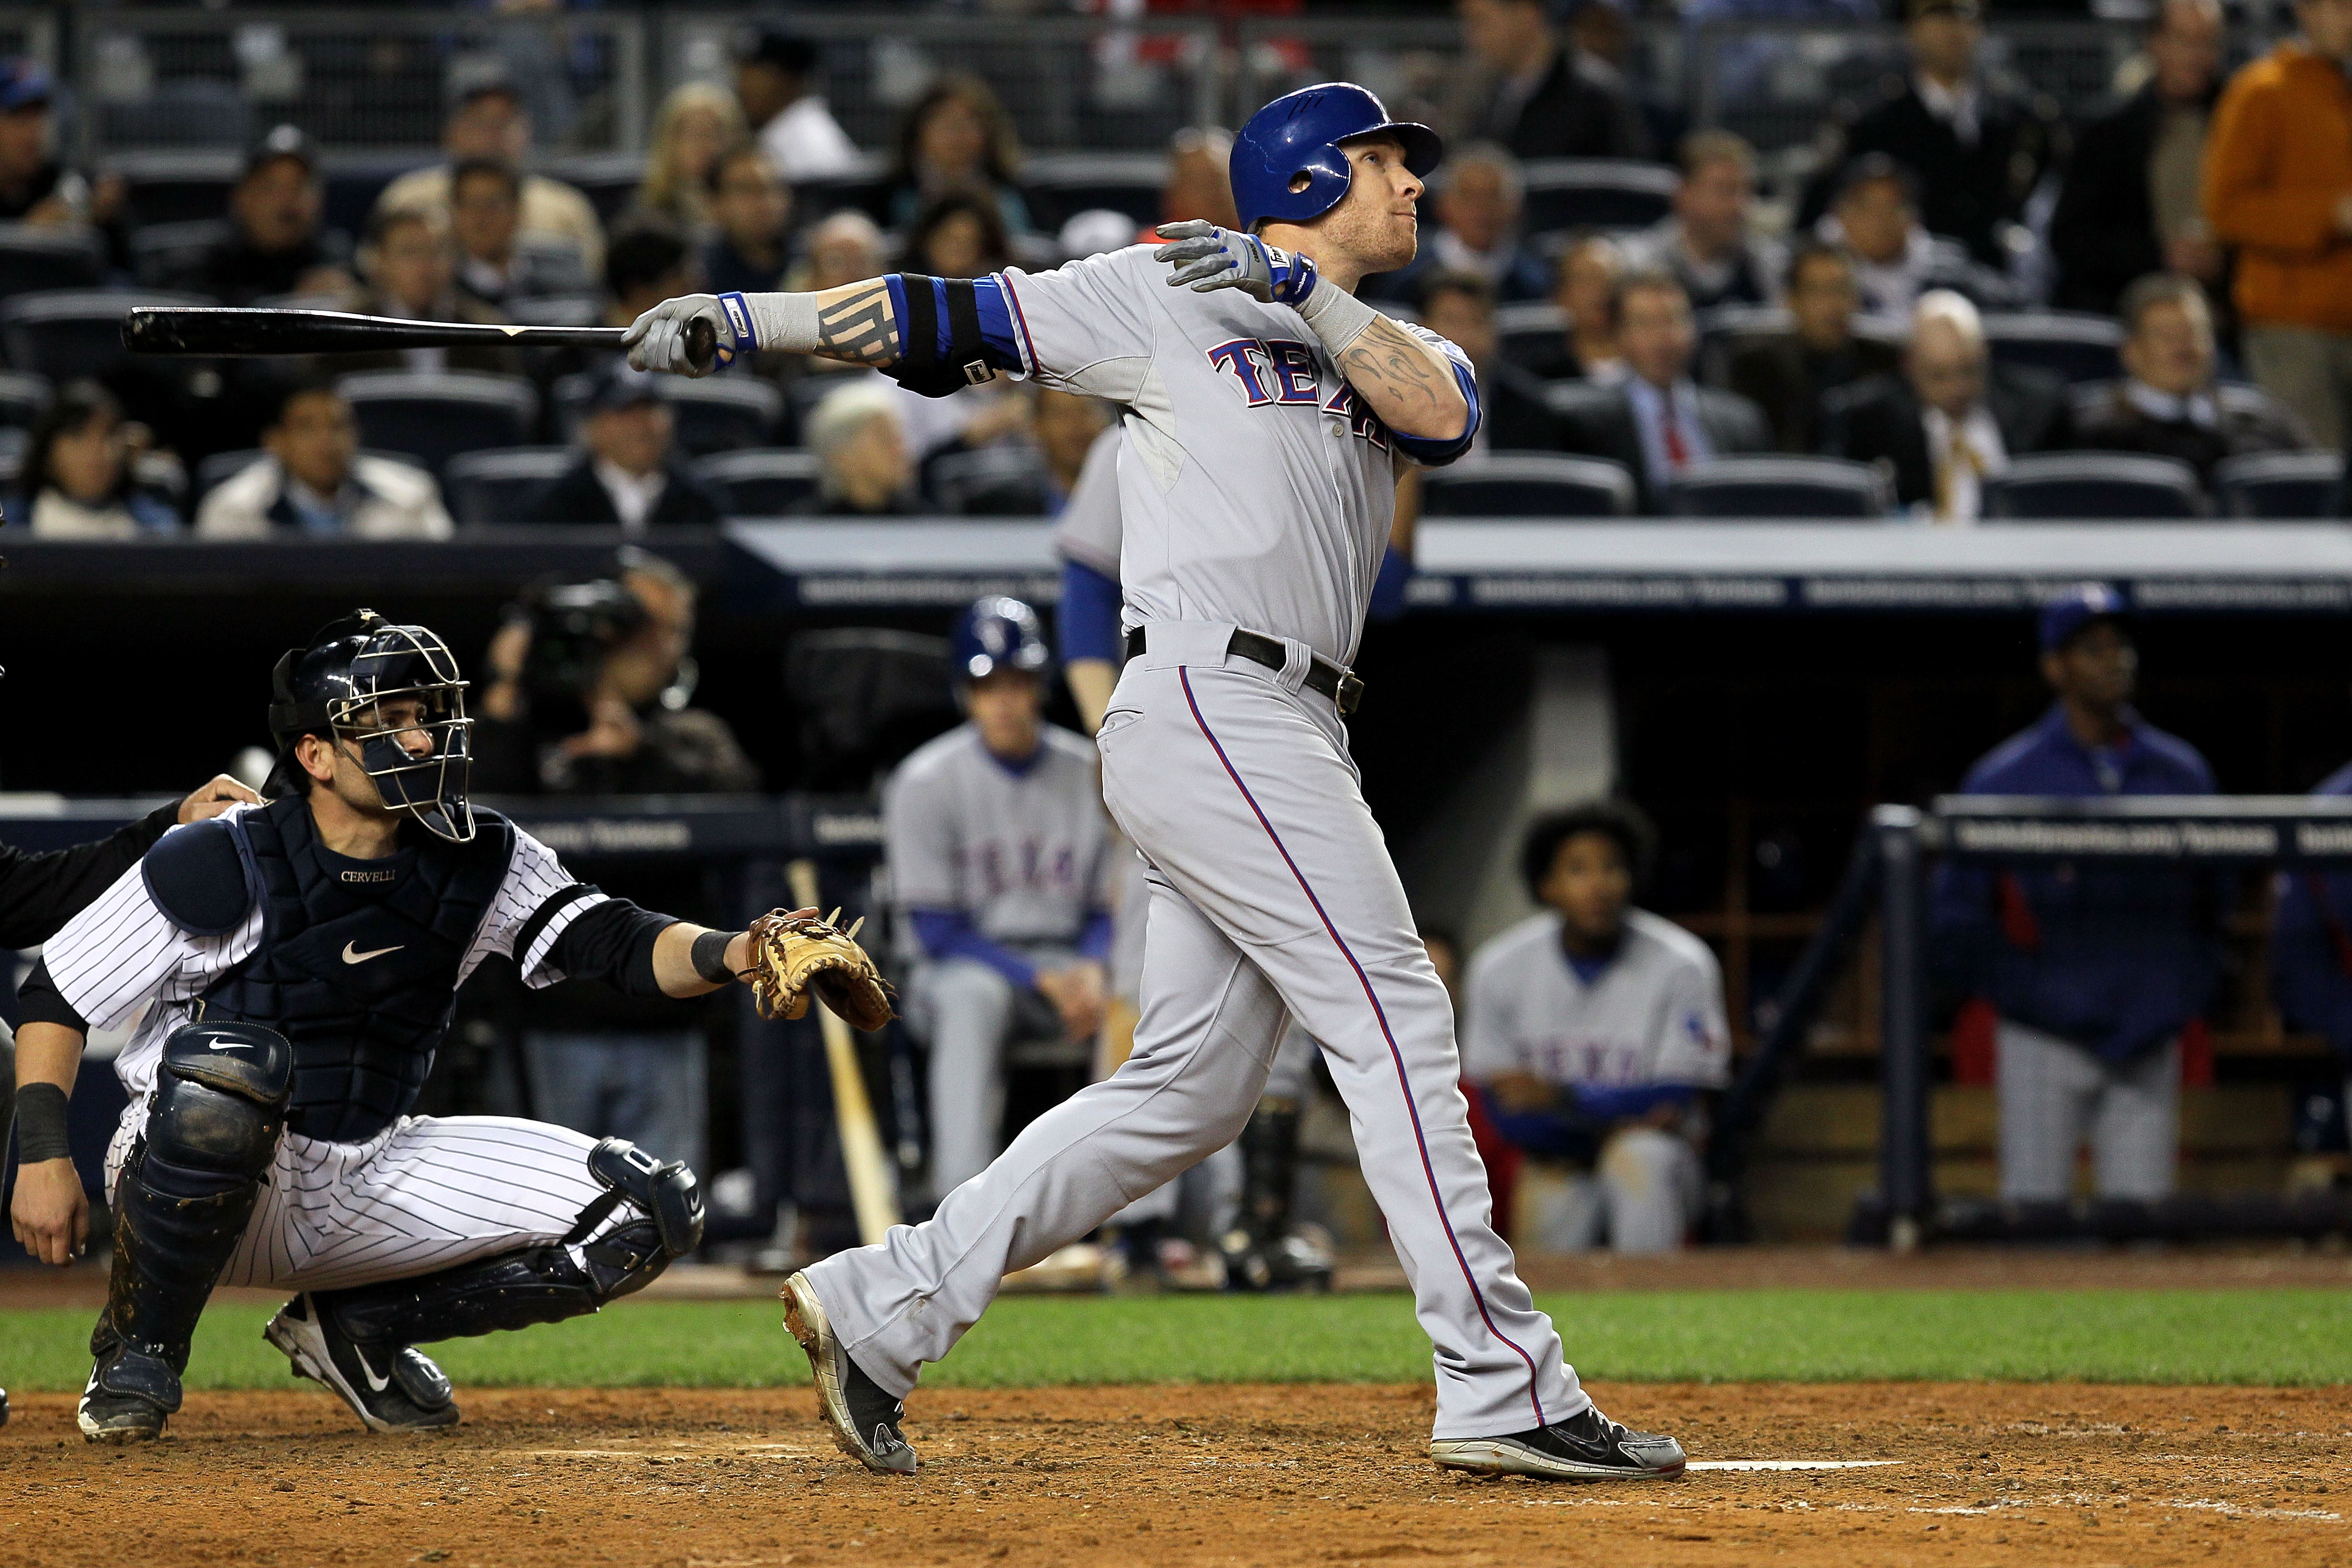 NEW YORK - OCTOBER 19:  Josh Hamilton #32 of the Texas Rangers hits a solo homerun in the ninth inning against the New York Yankees in Game Four of the ALCS during the 2010 MLB Playoffs at Yankee Stadium on October 19, 2010 in the Bronx borough of New Yor